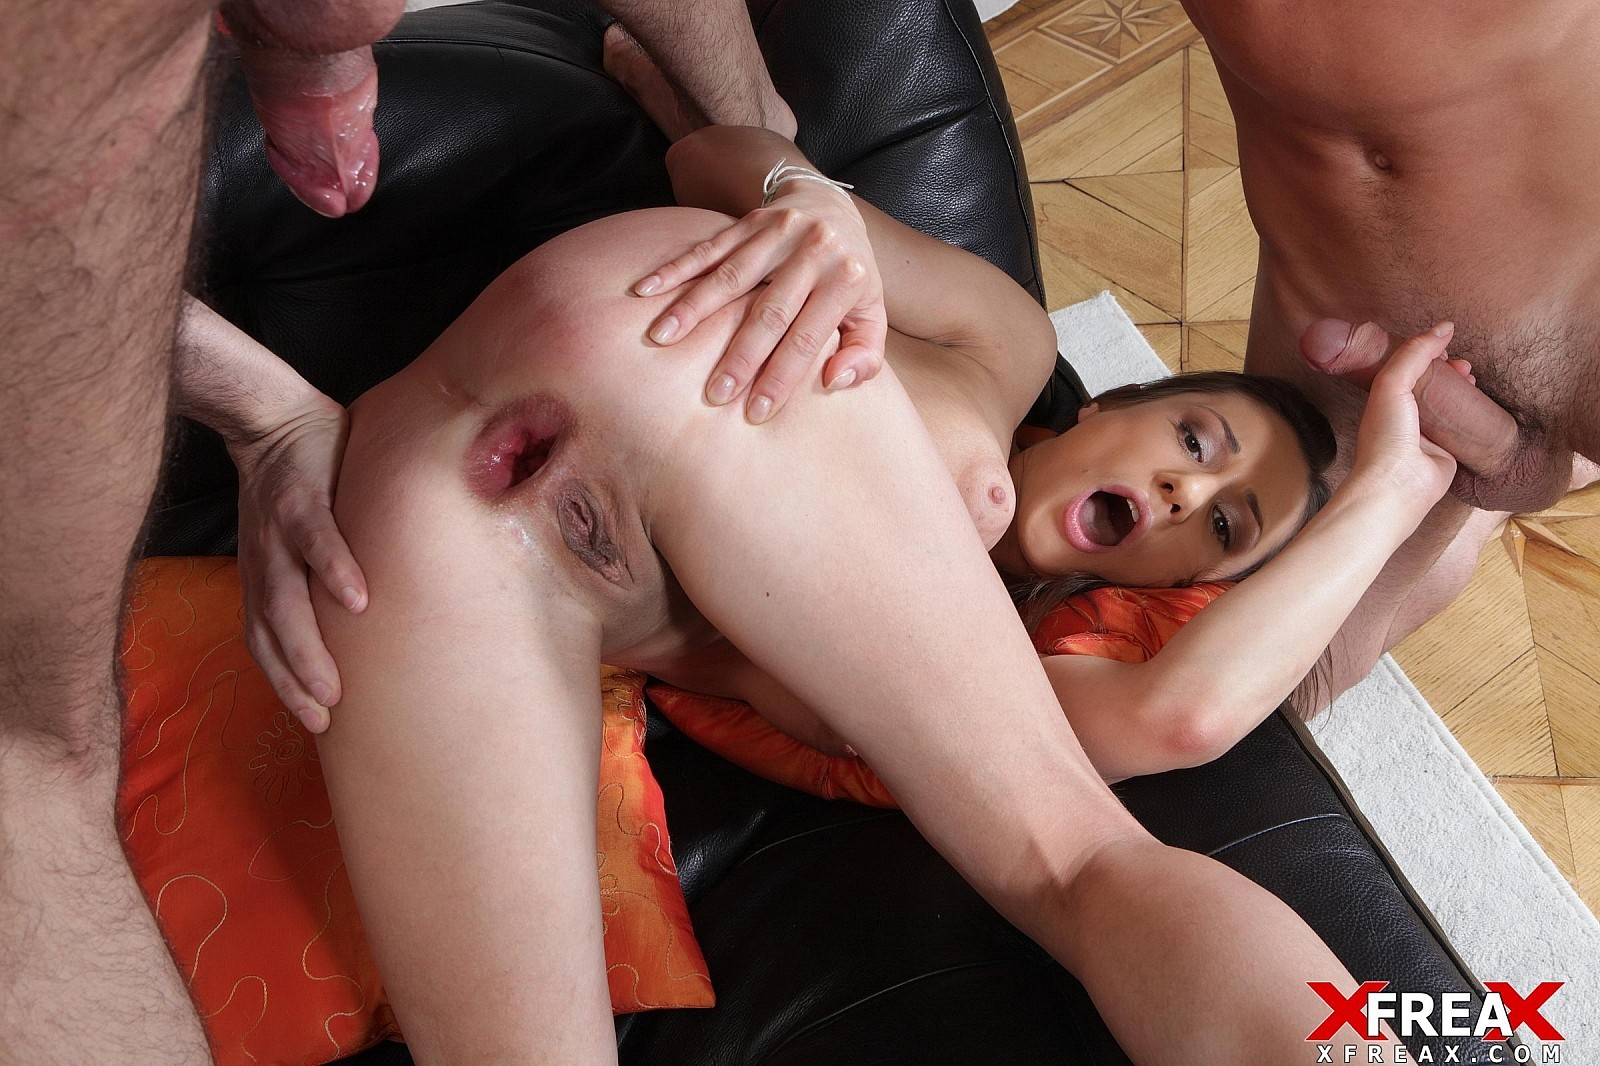 [GapeParade] Brunette Gets Anal Creampie before Dp and Anal Sex